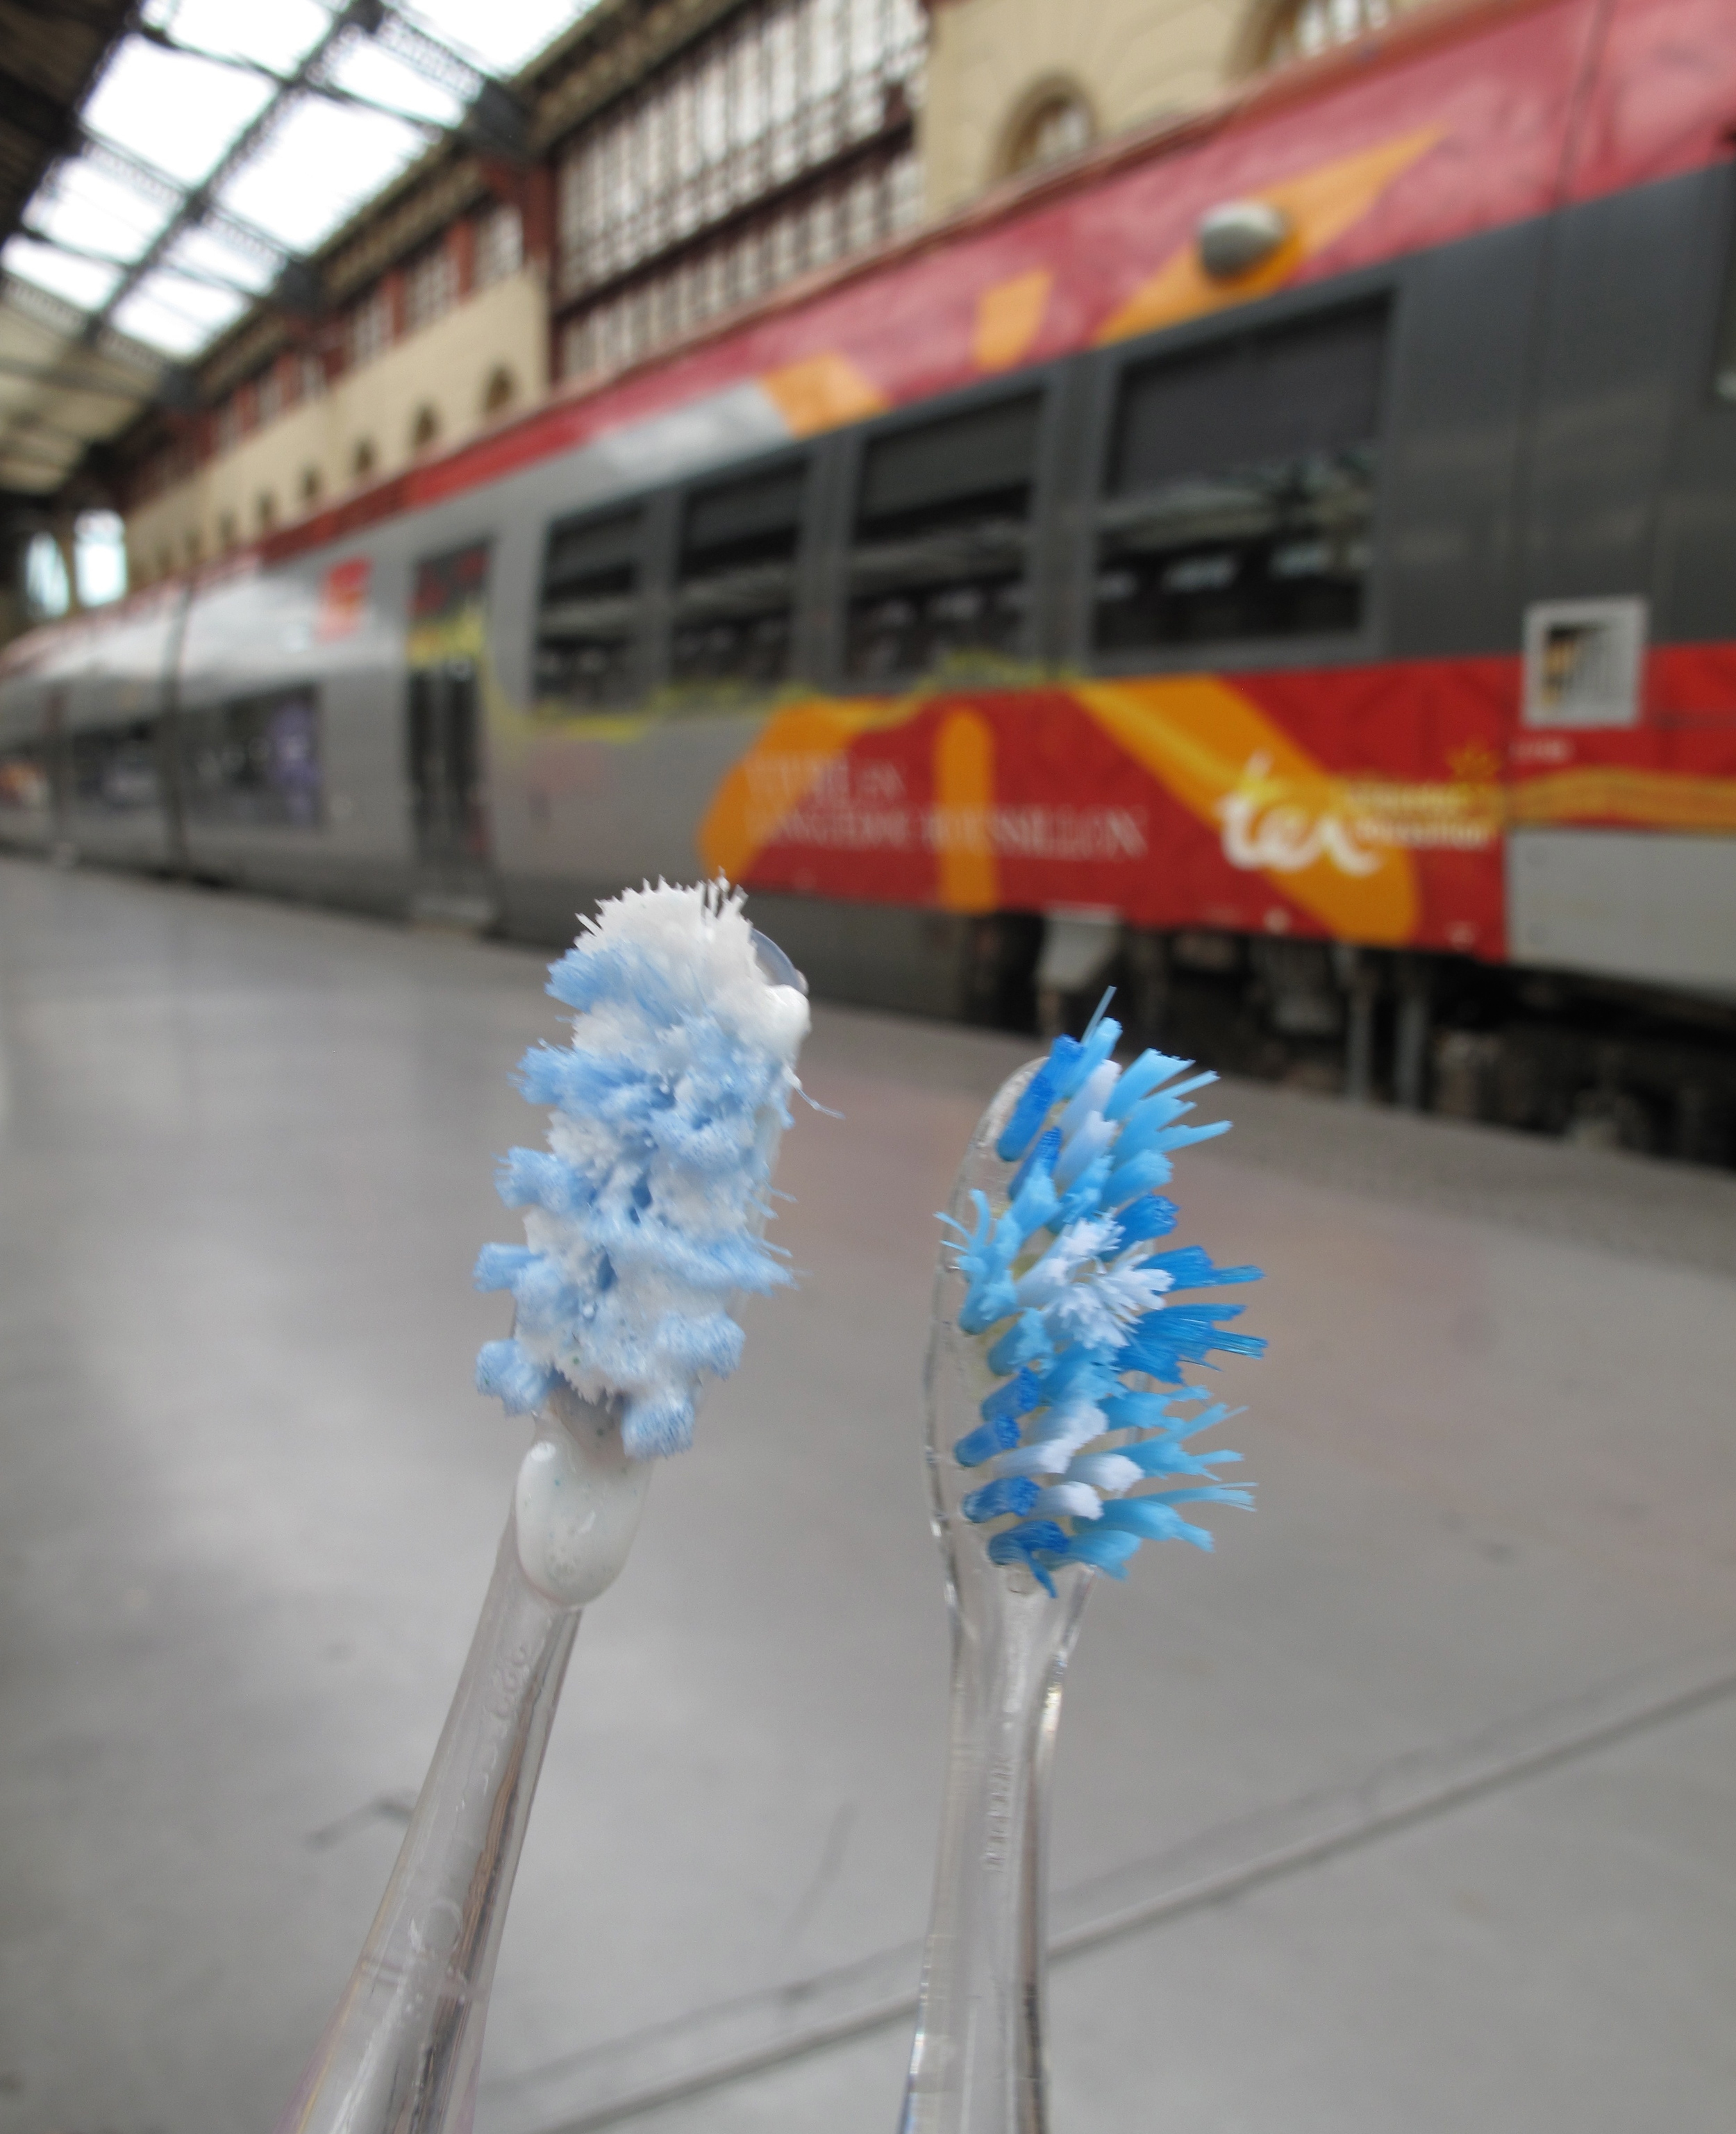 Brushing our teeth in Marseilles train station